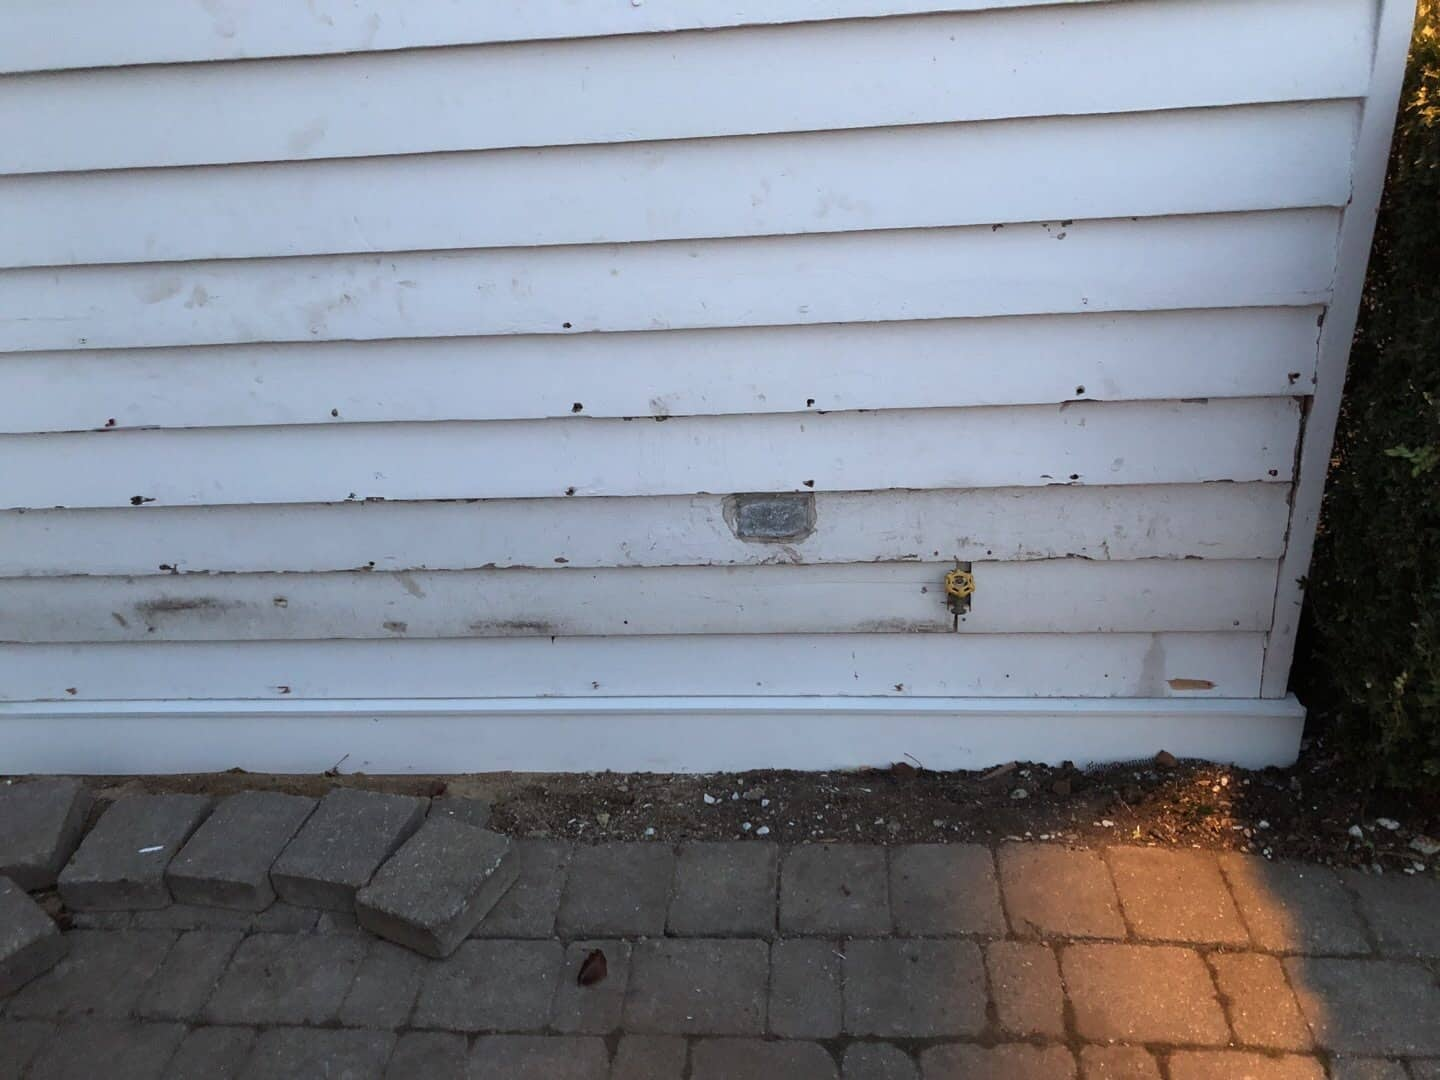 Damaged siding from winter